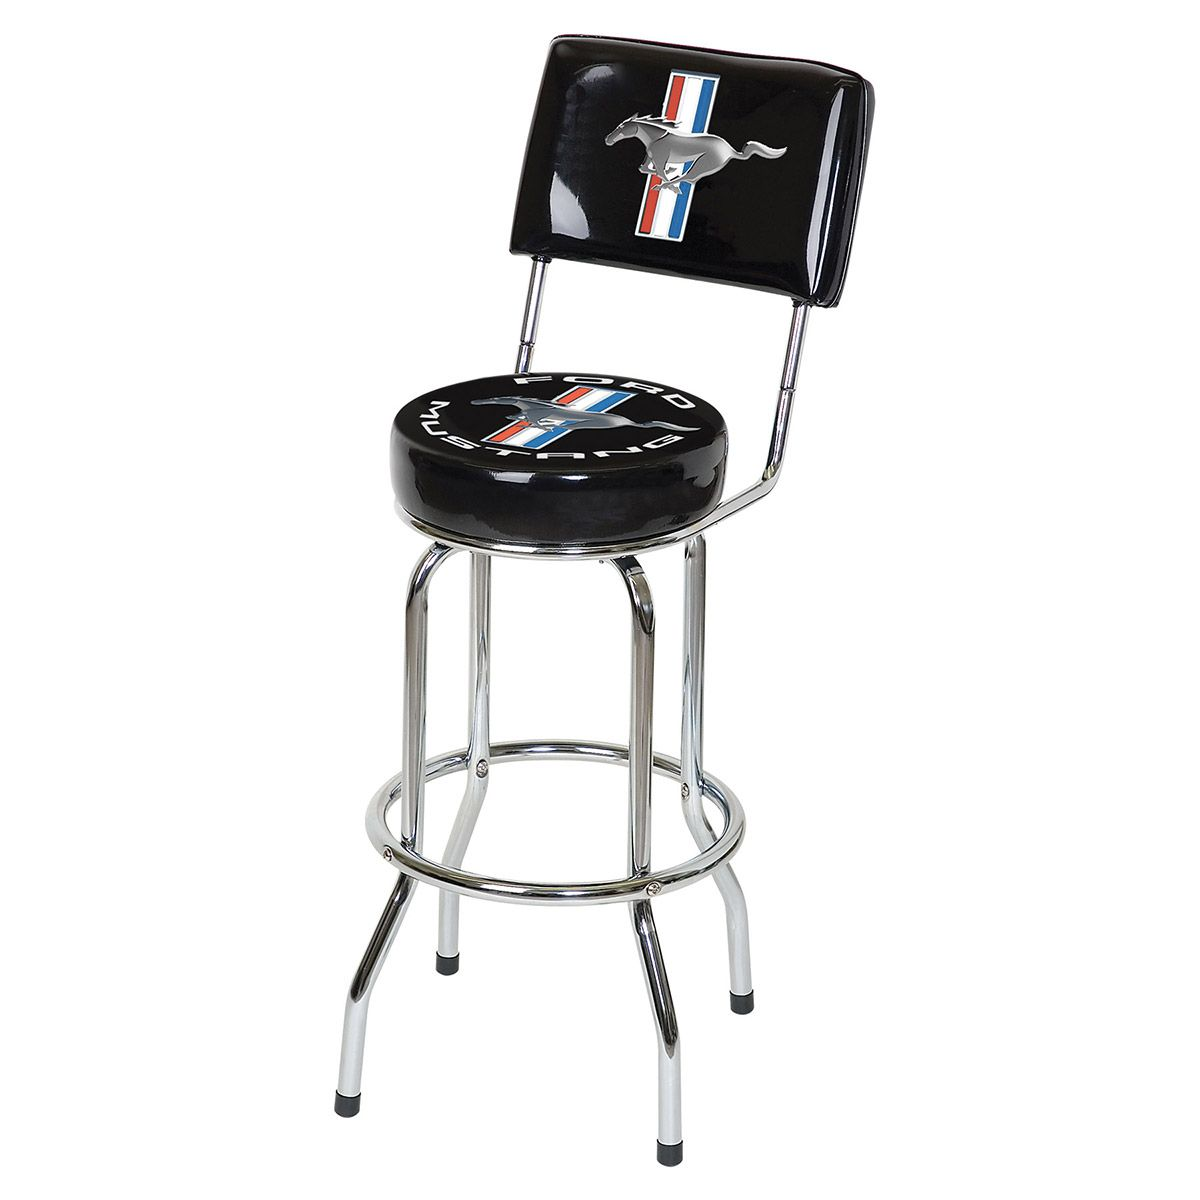 metal bar stools calgary probably outrageous amazing black ford mustang vinyl swivel backrest stool game room decor with retroplanet outdoor backless padded counter height target